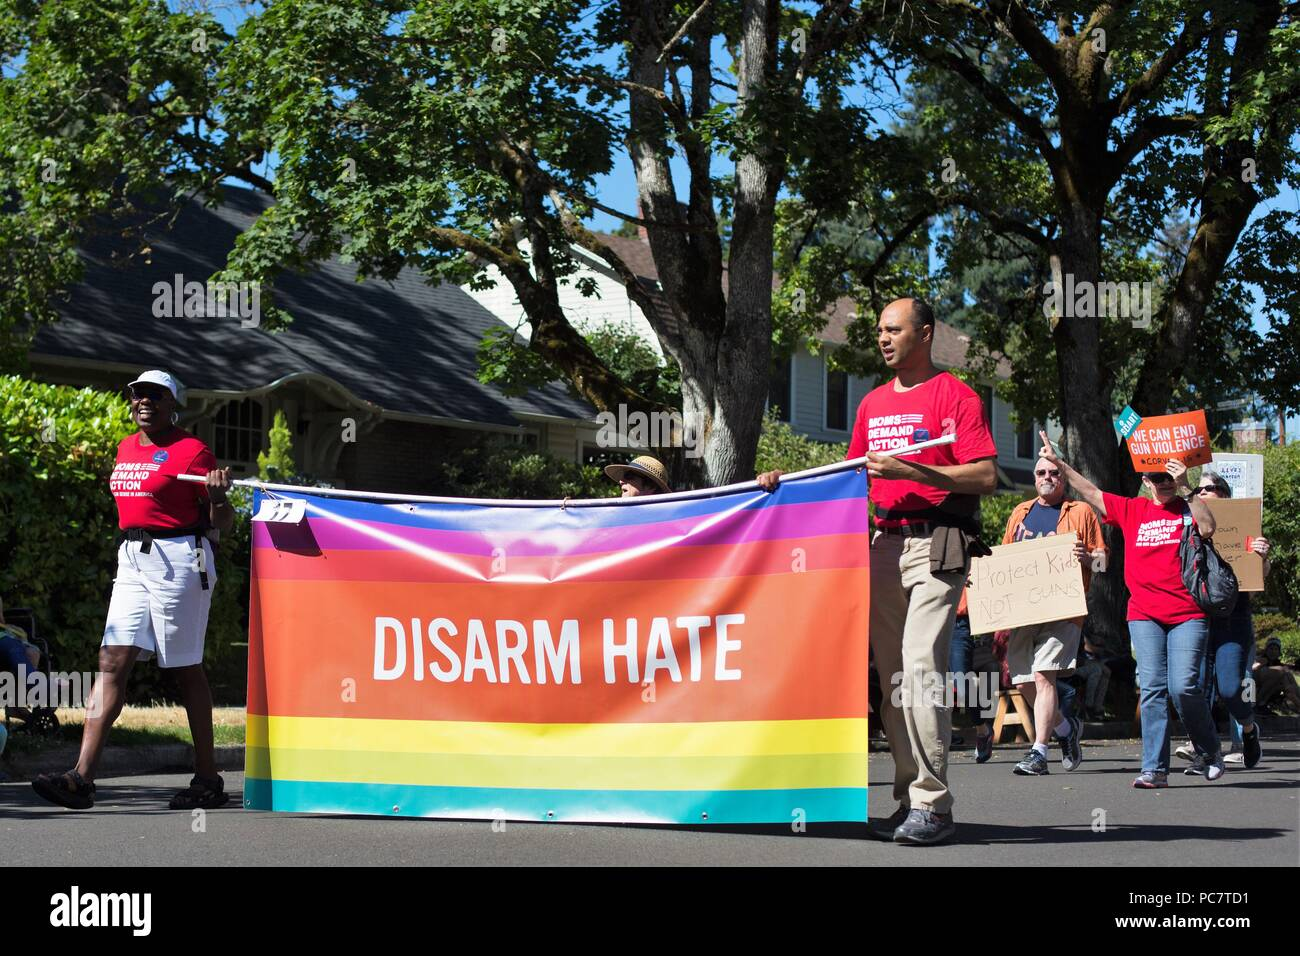 Anti-gun activists holding a 'disarm hate' banner, at the Eug Parade in Eugene, Oregon, USA. - Stock Image